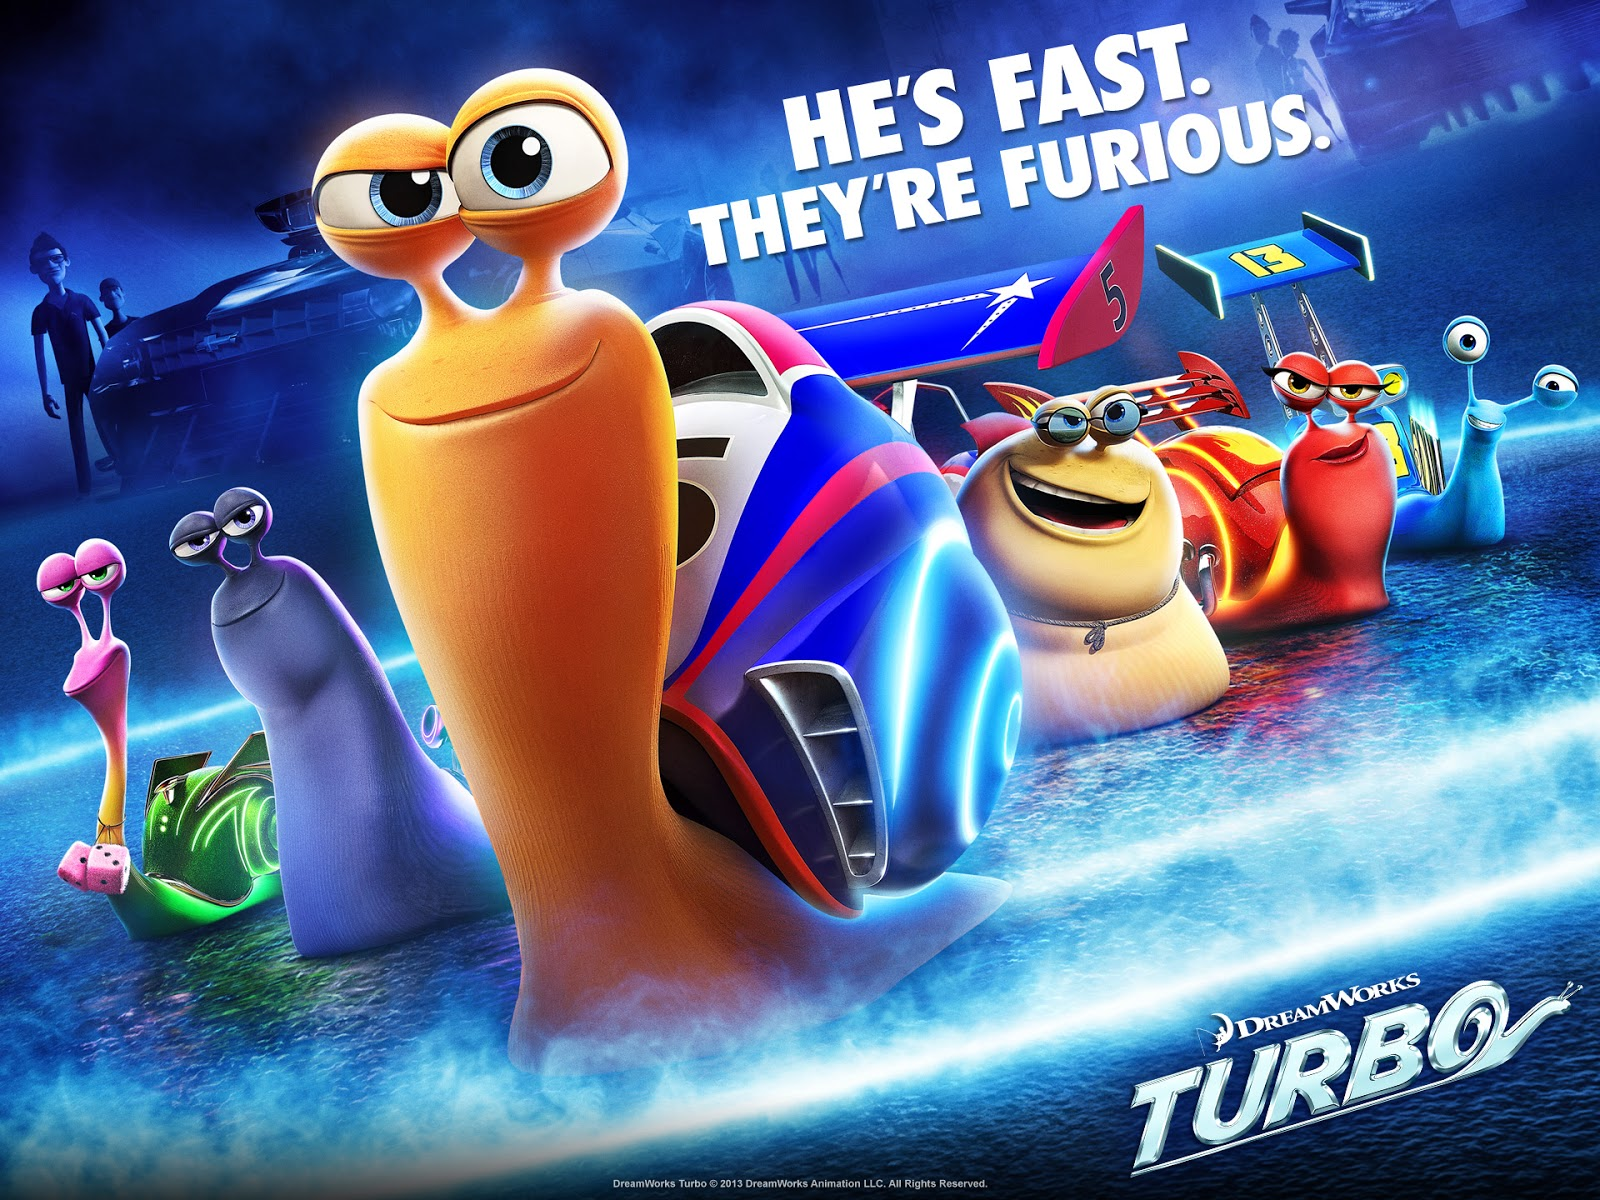 Dreamworks turbo movie hd wallpapers character posters download free dreamworks turbo 3d movie poster hd wallpaper voltagebd Images